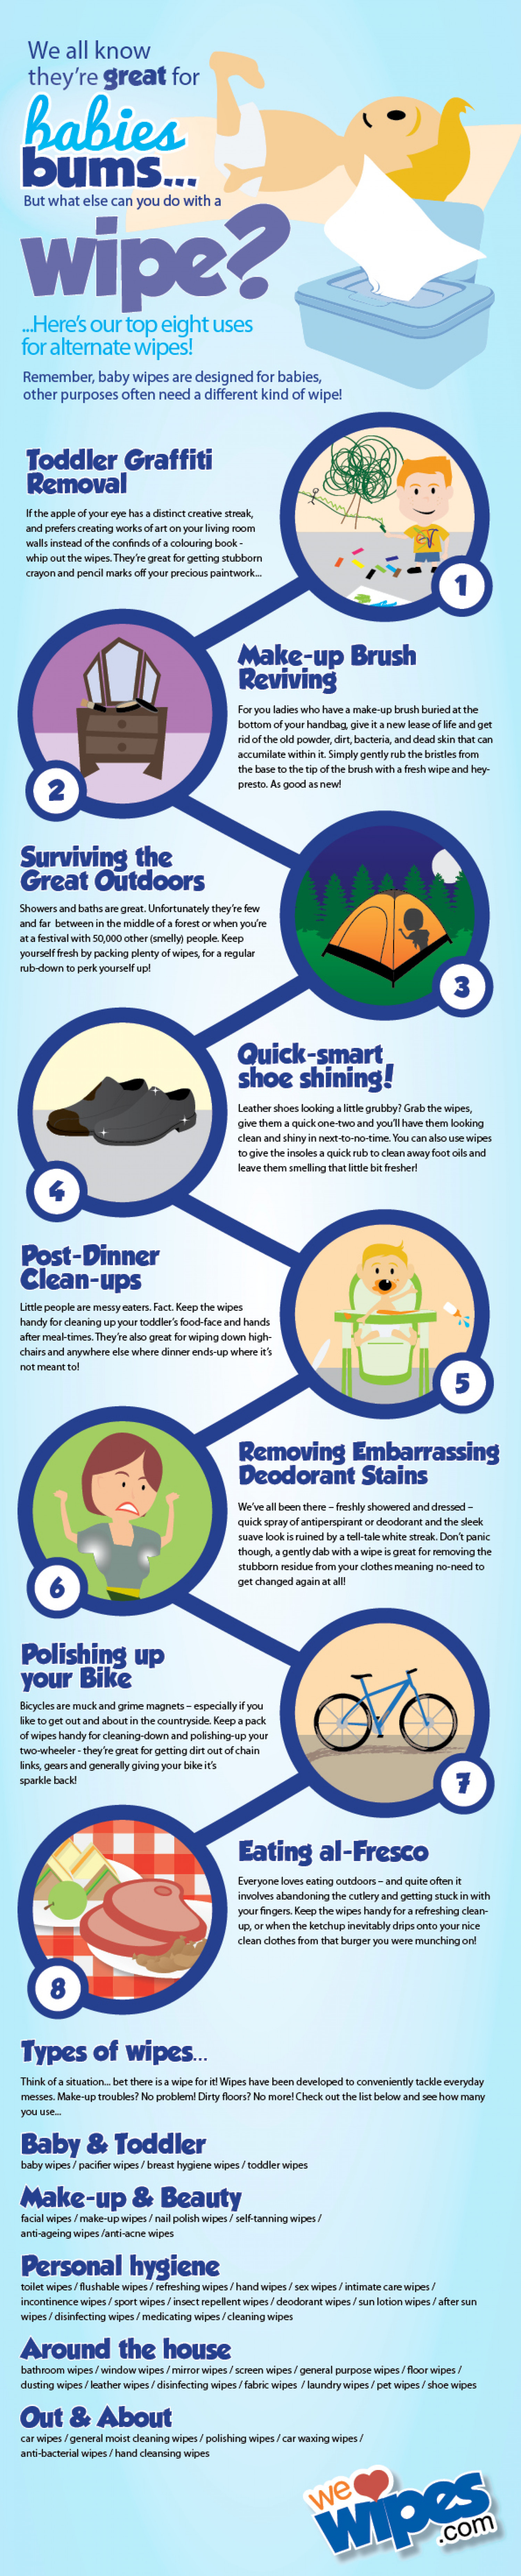 Wet Wipes... Not just for Babies Bums!  Infographic